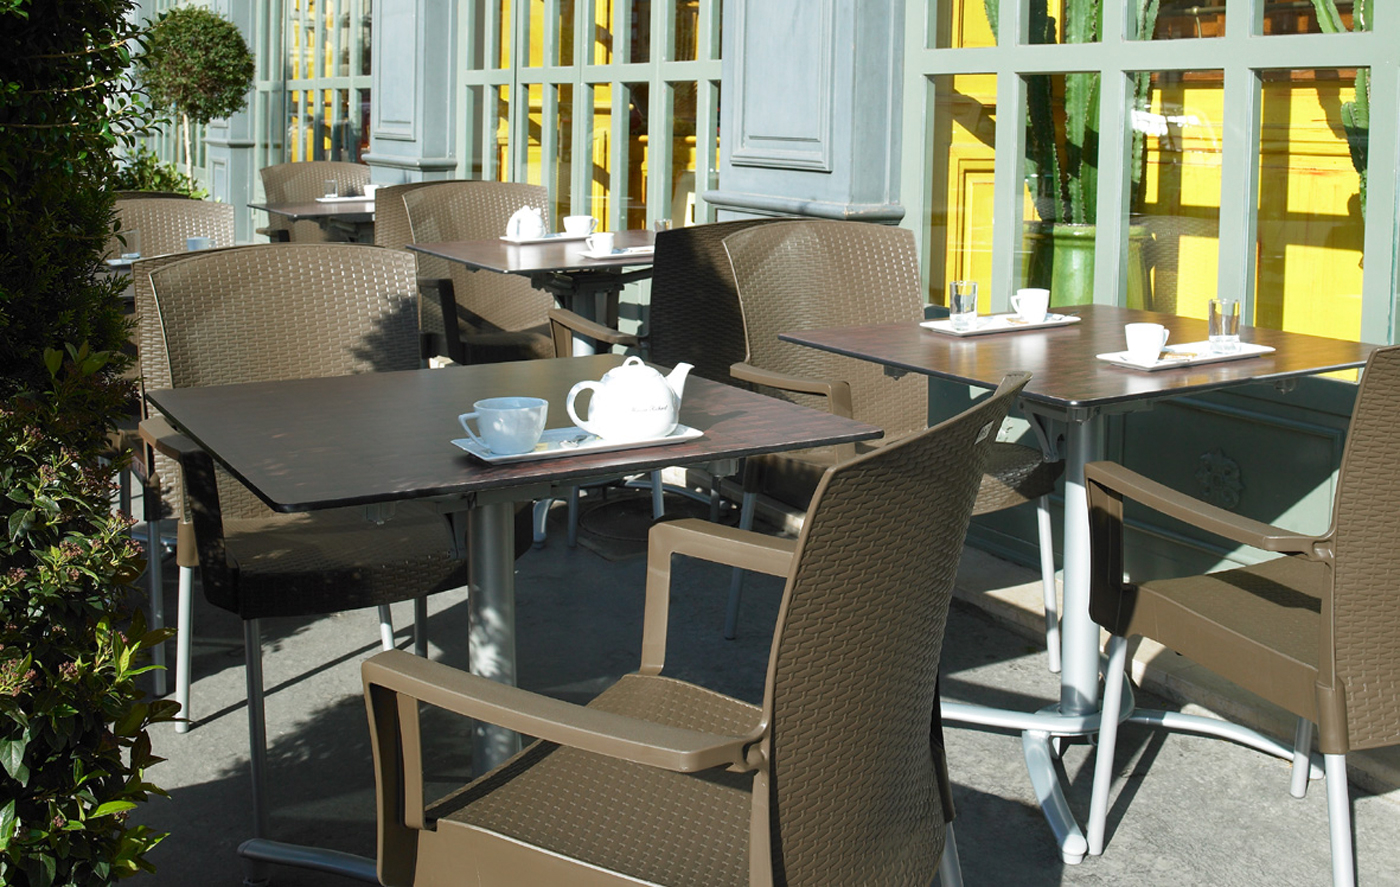 Mobilier terrasse bar caf bistrot chaises fauteuils for Mobilier terrasse